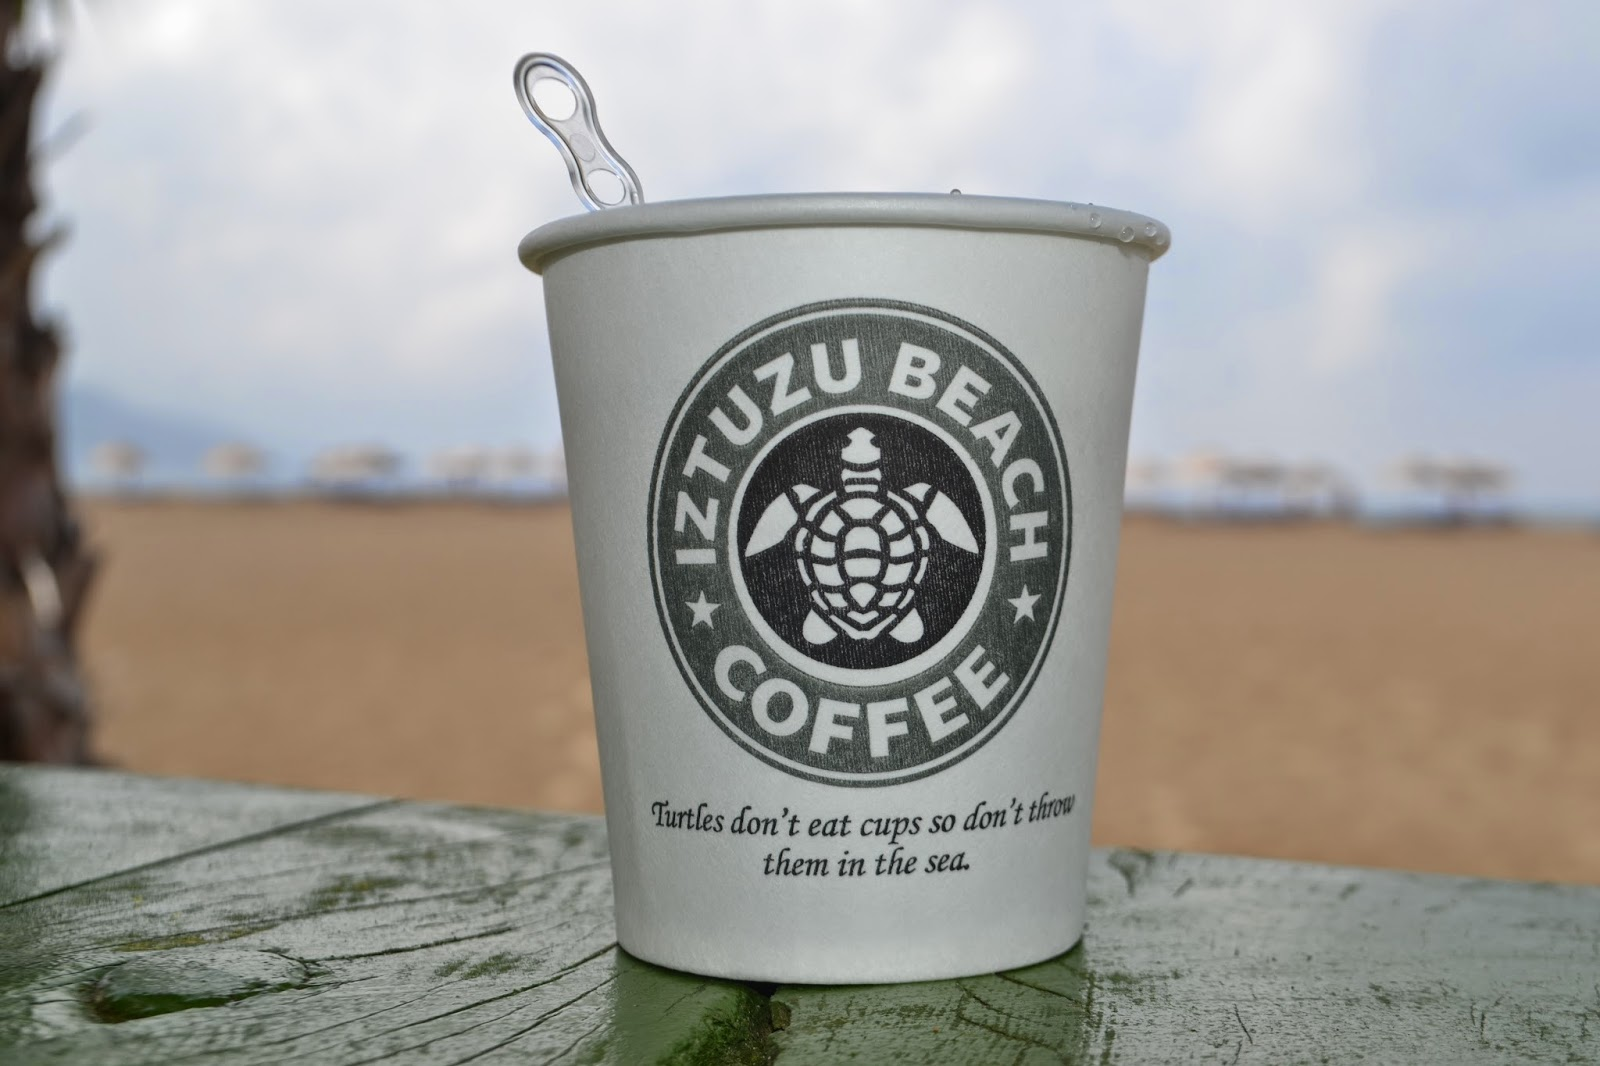 a coffee cup with the Iztuzu beach logo on the side which mimics the starbucks logo